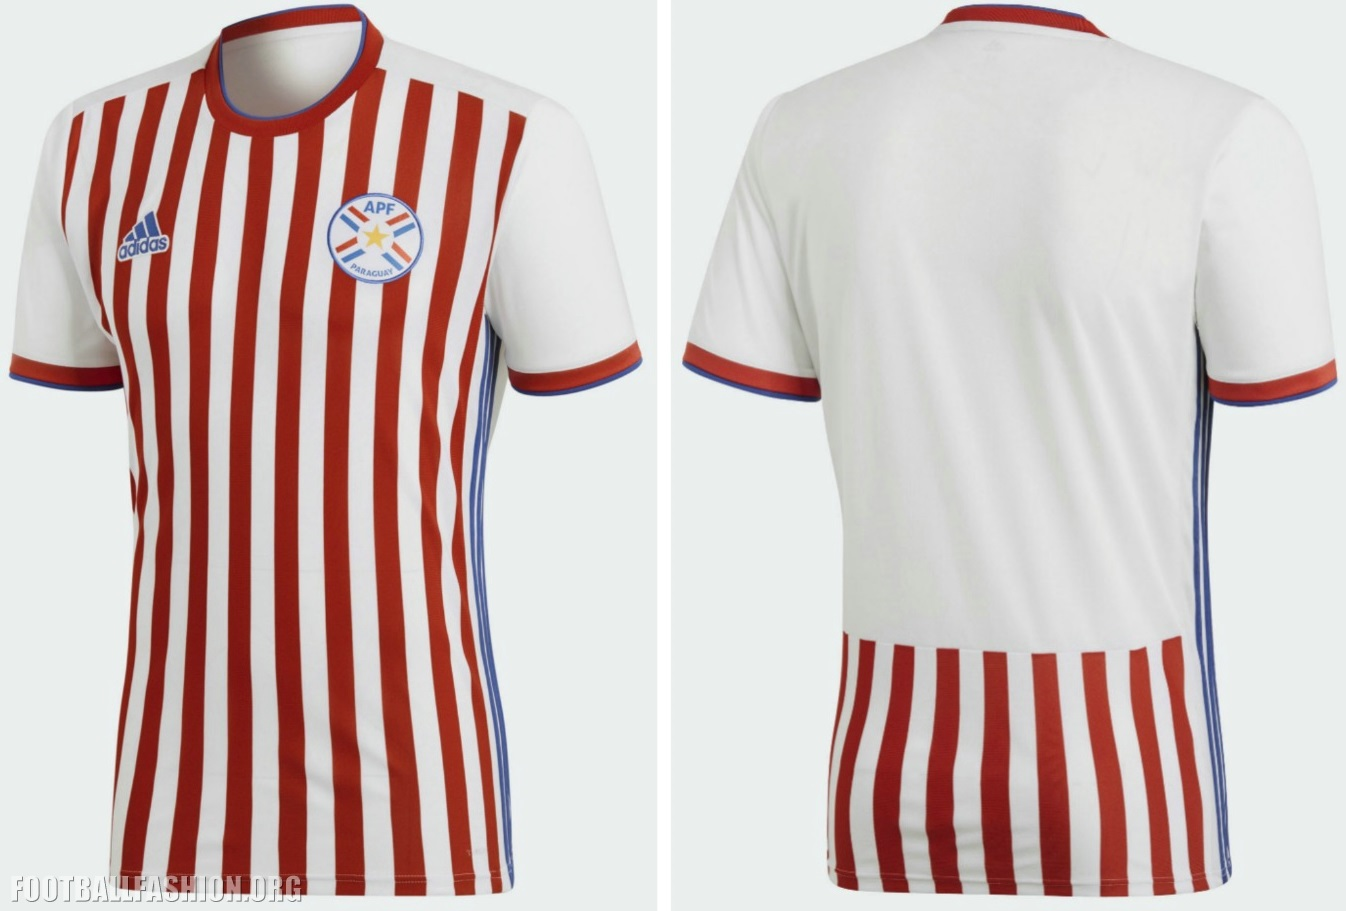 https://i2.wp.com/footballfashion.org/wordpress/wp-content/uploads/2017/11/paraguay-2018-2019-adidas-home-kit-1.jpg